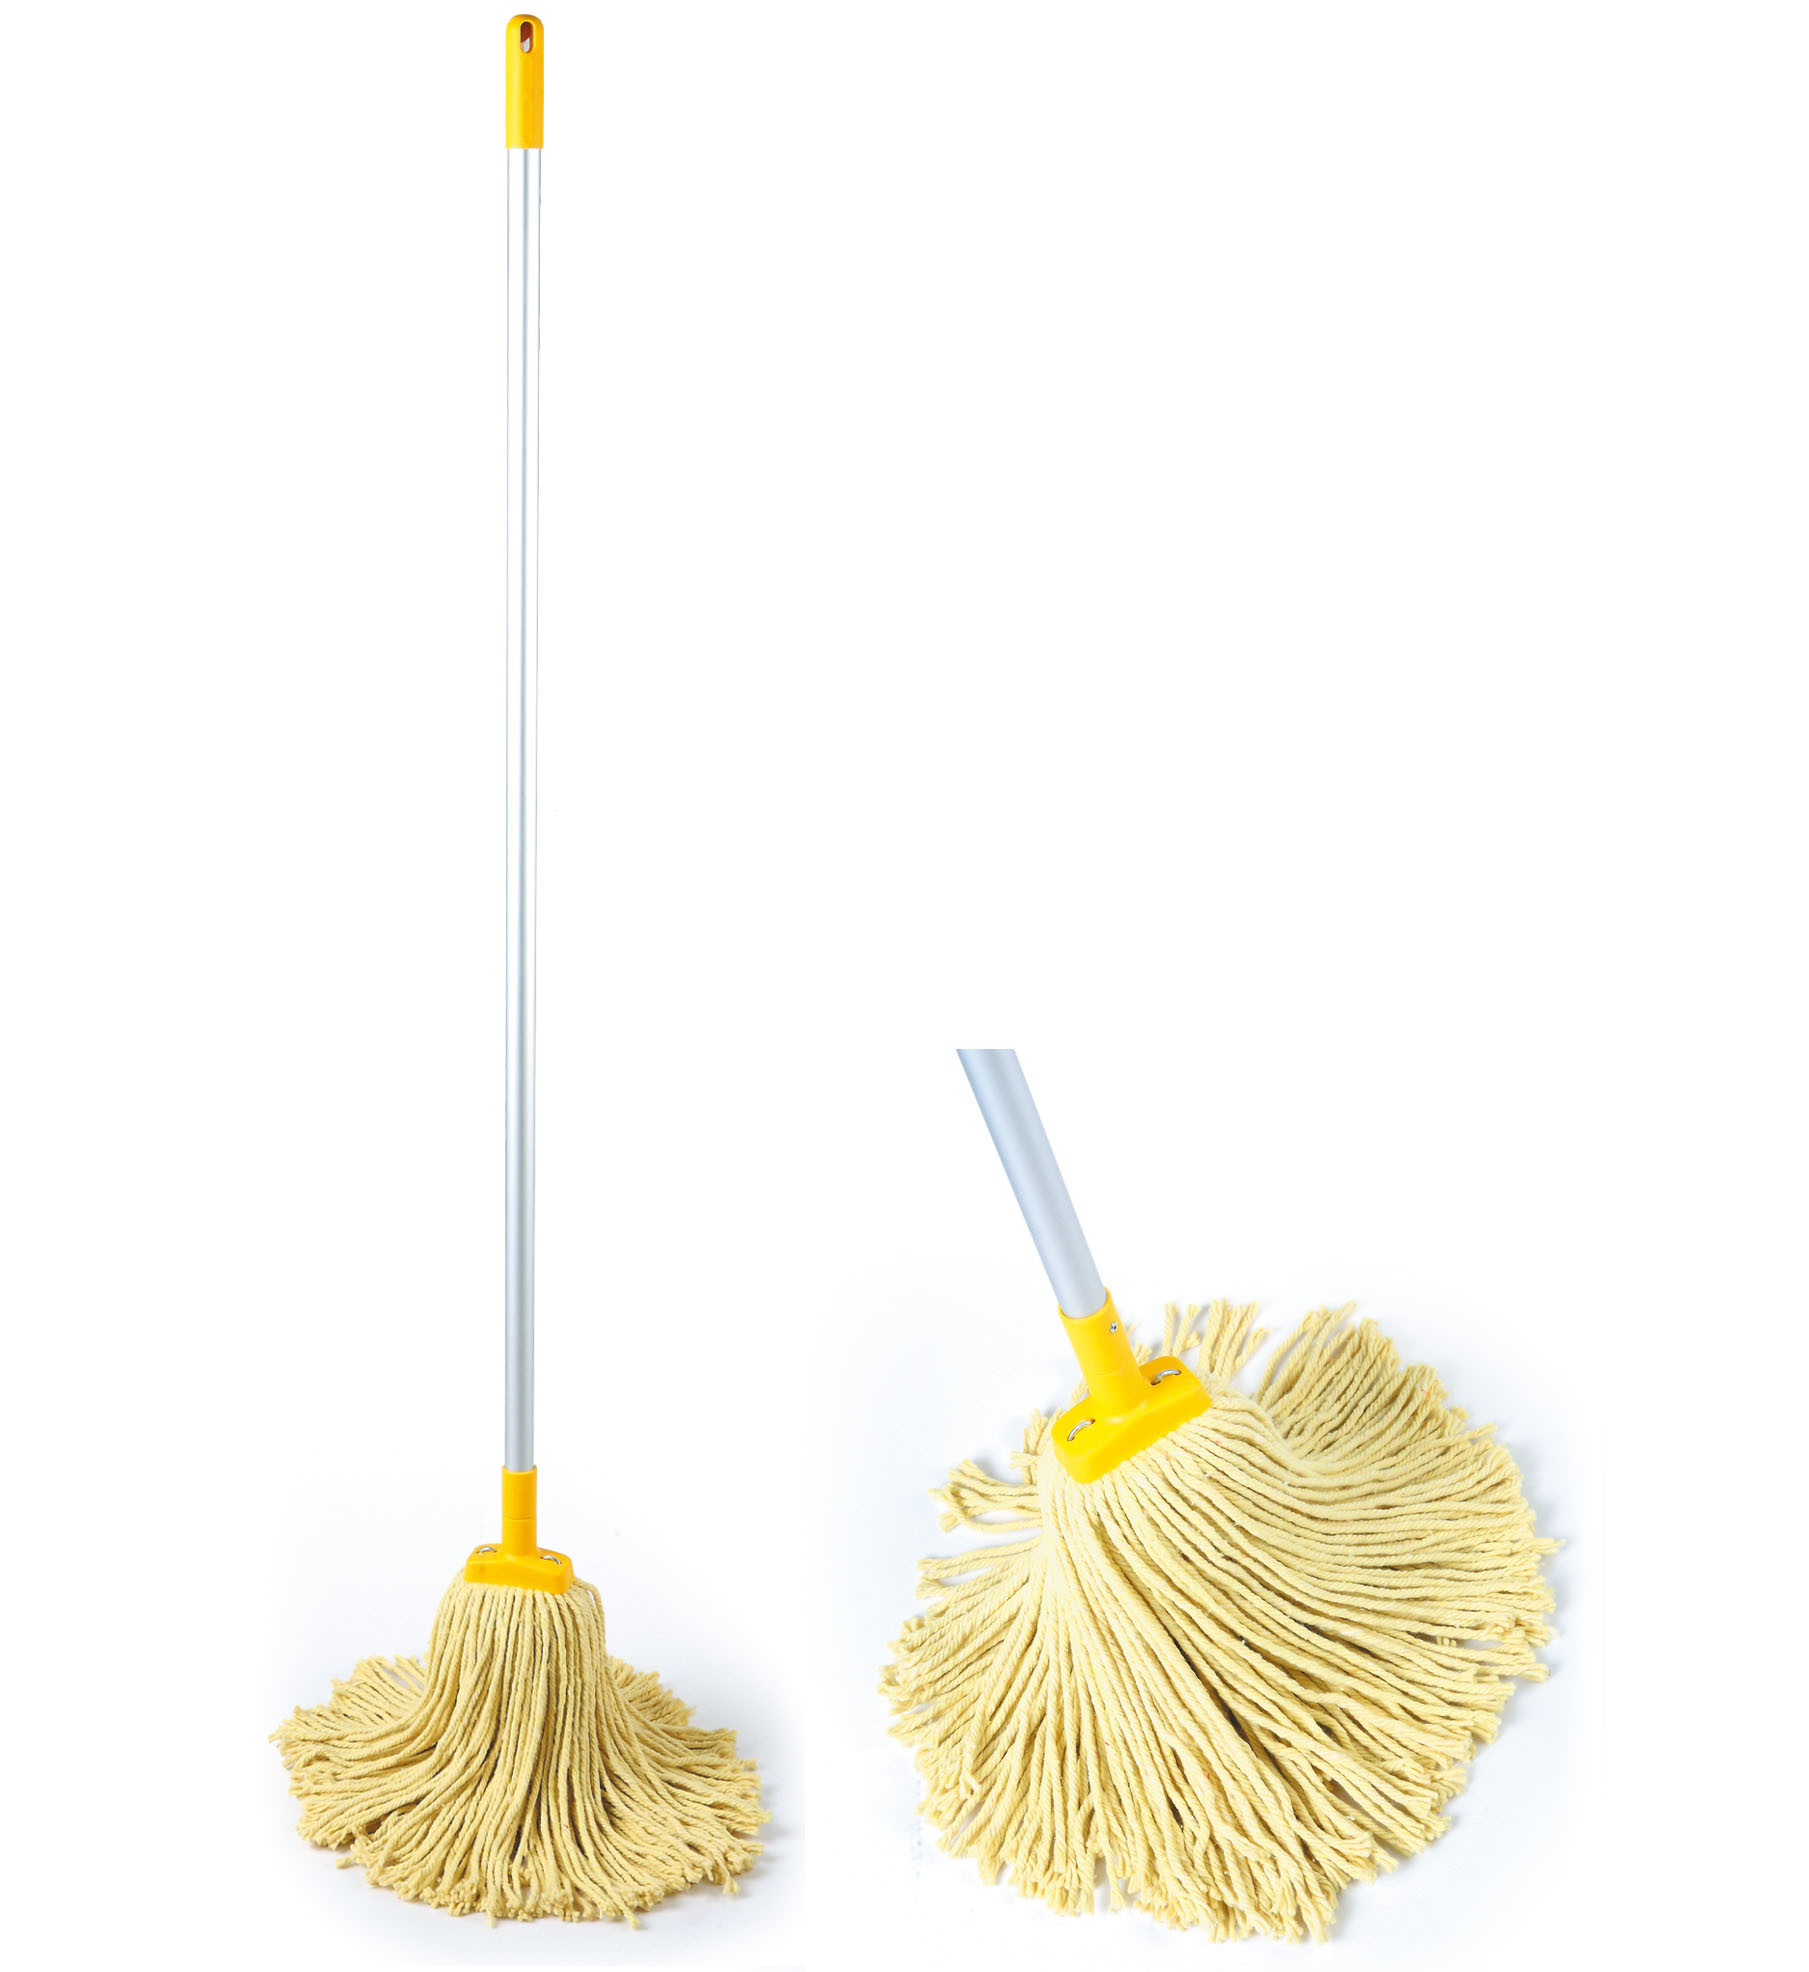 Commercial Mop : China Commercial Mop 425g/15.0oz. (60086) - China Mop, Commercial Mop